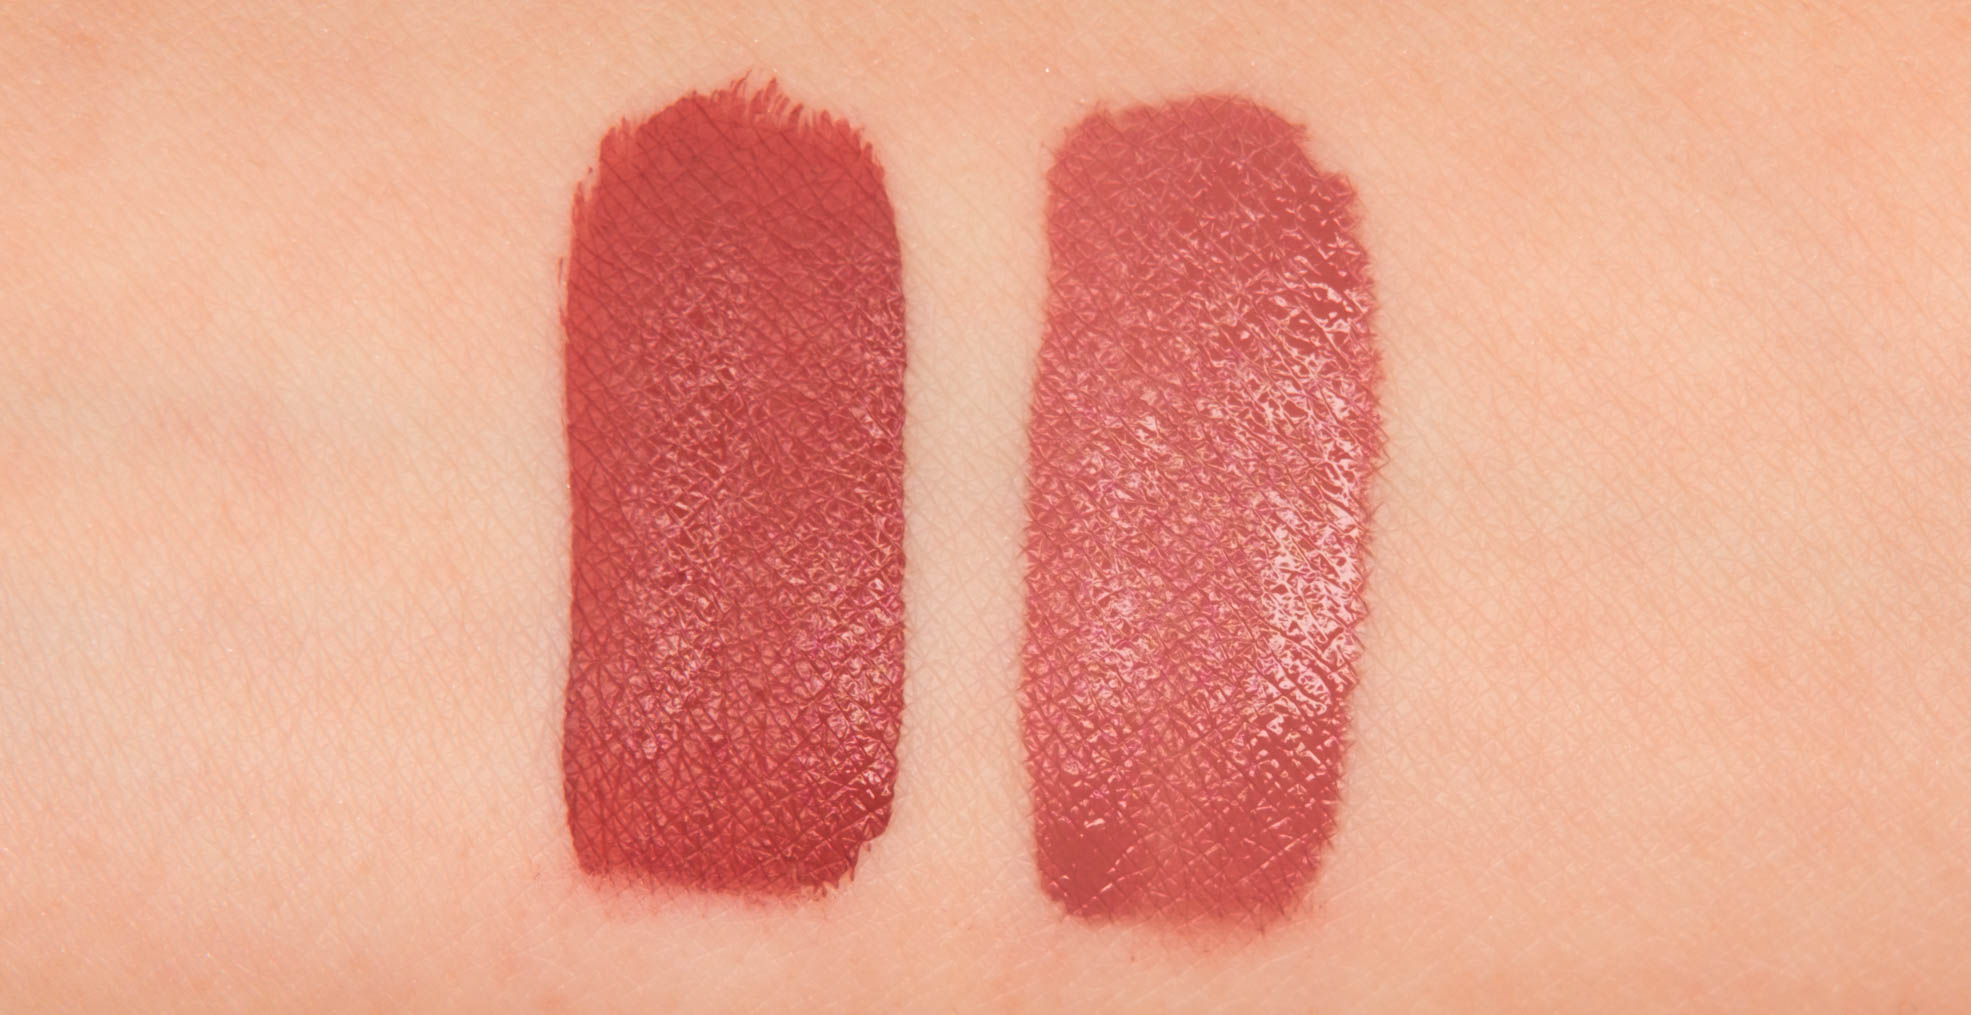 Anastasia Beverly Hills Liquid Lipstick in Kathryn, NARS Powermatte Lip Pigment in American Woman swatches side by side